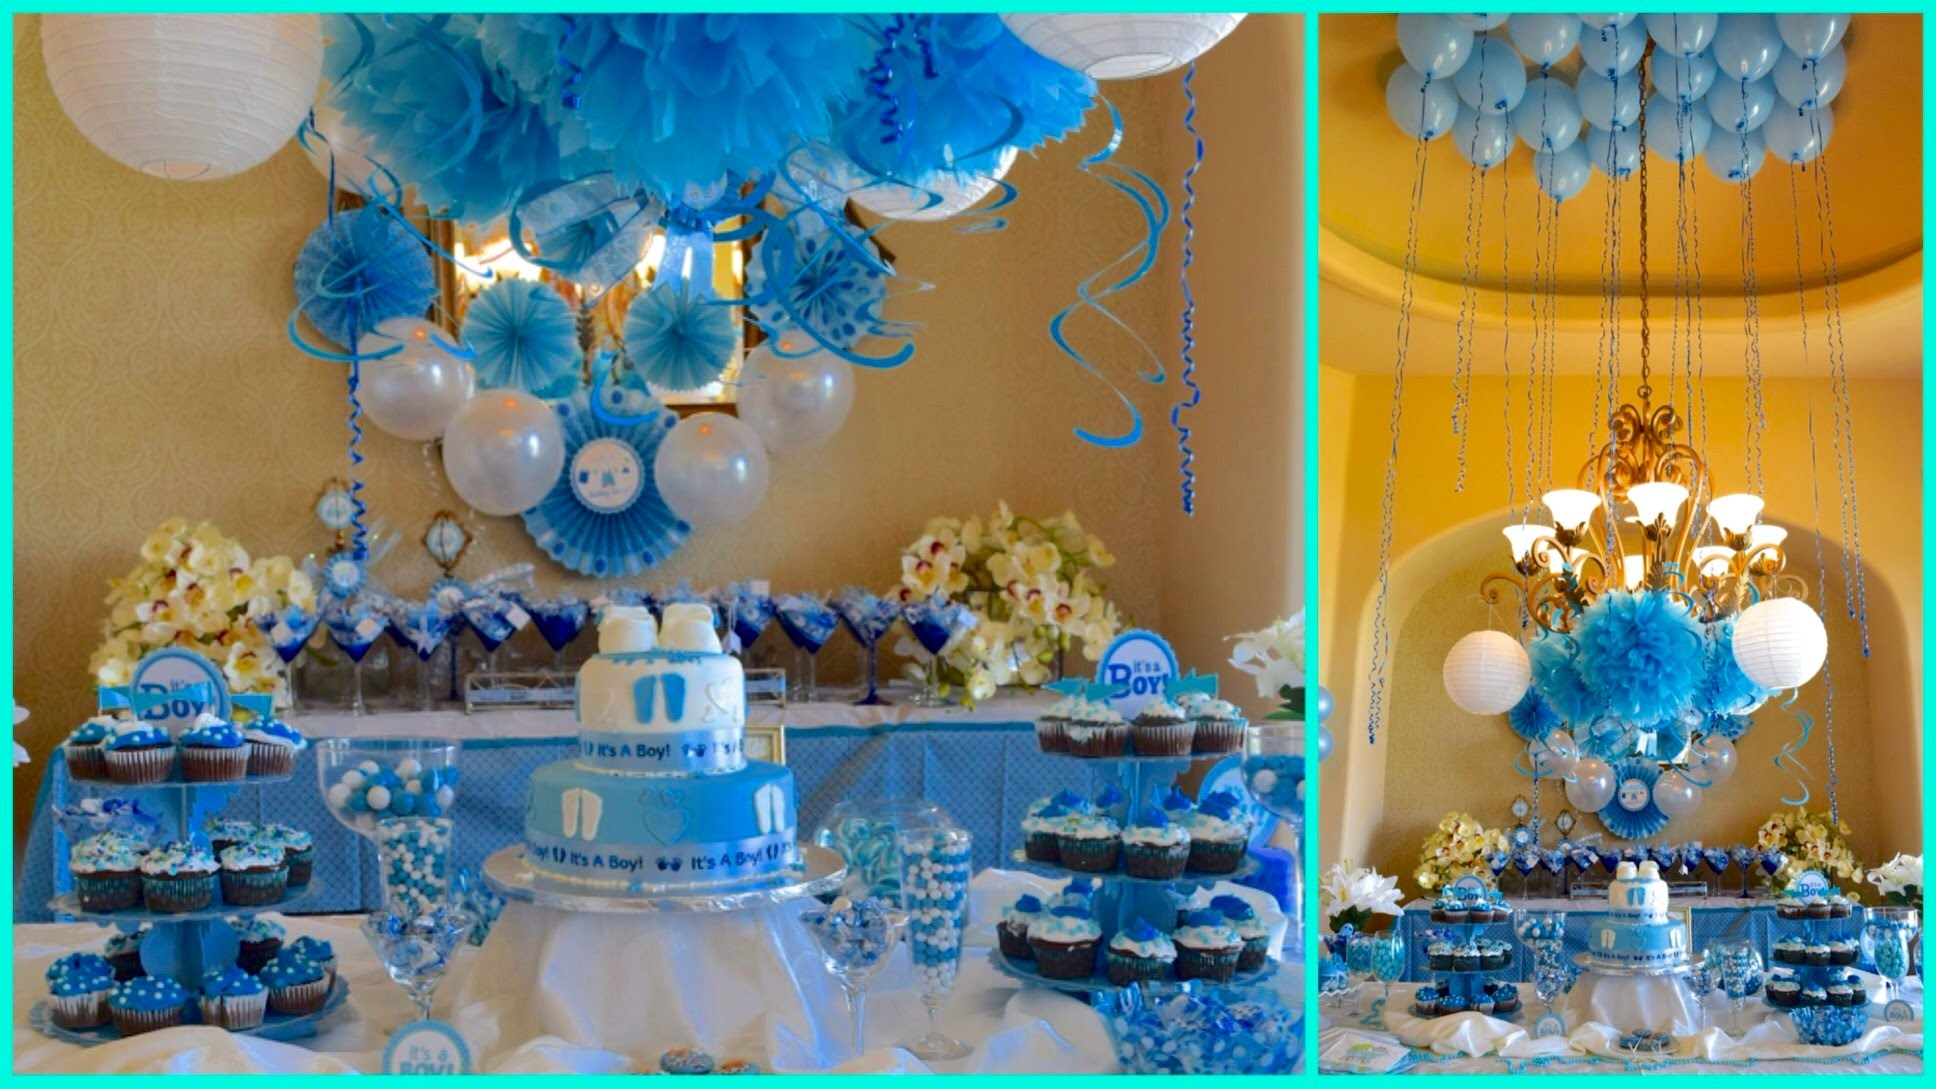 Creative baby shower decorations for boy baby shower ideas for boy blue theme - youtube aenrlpx